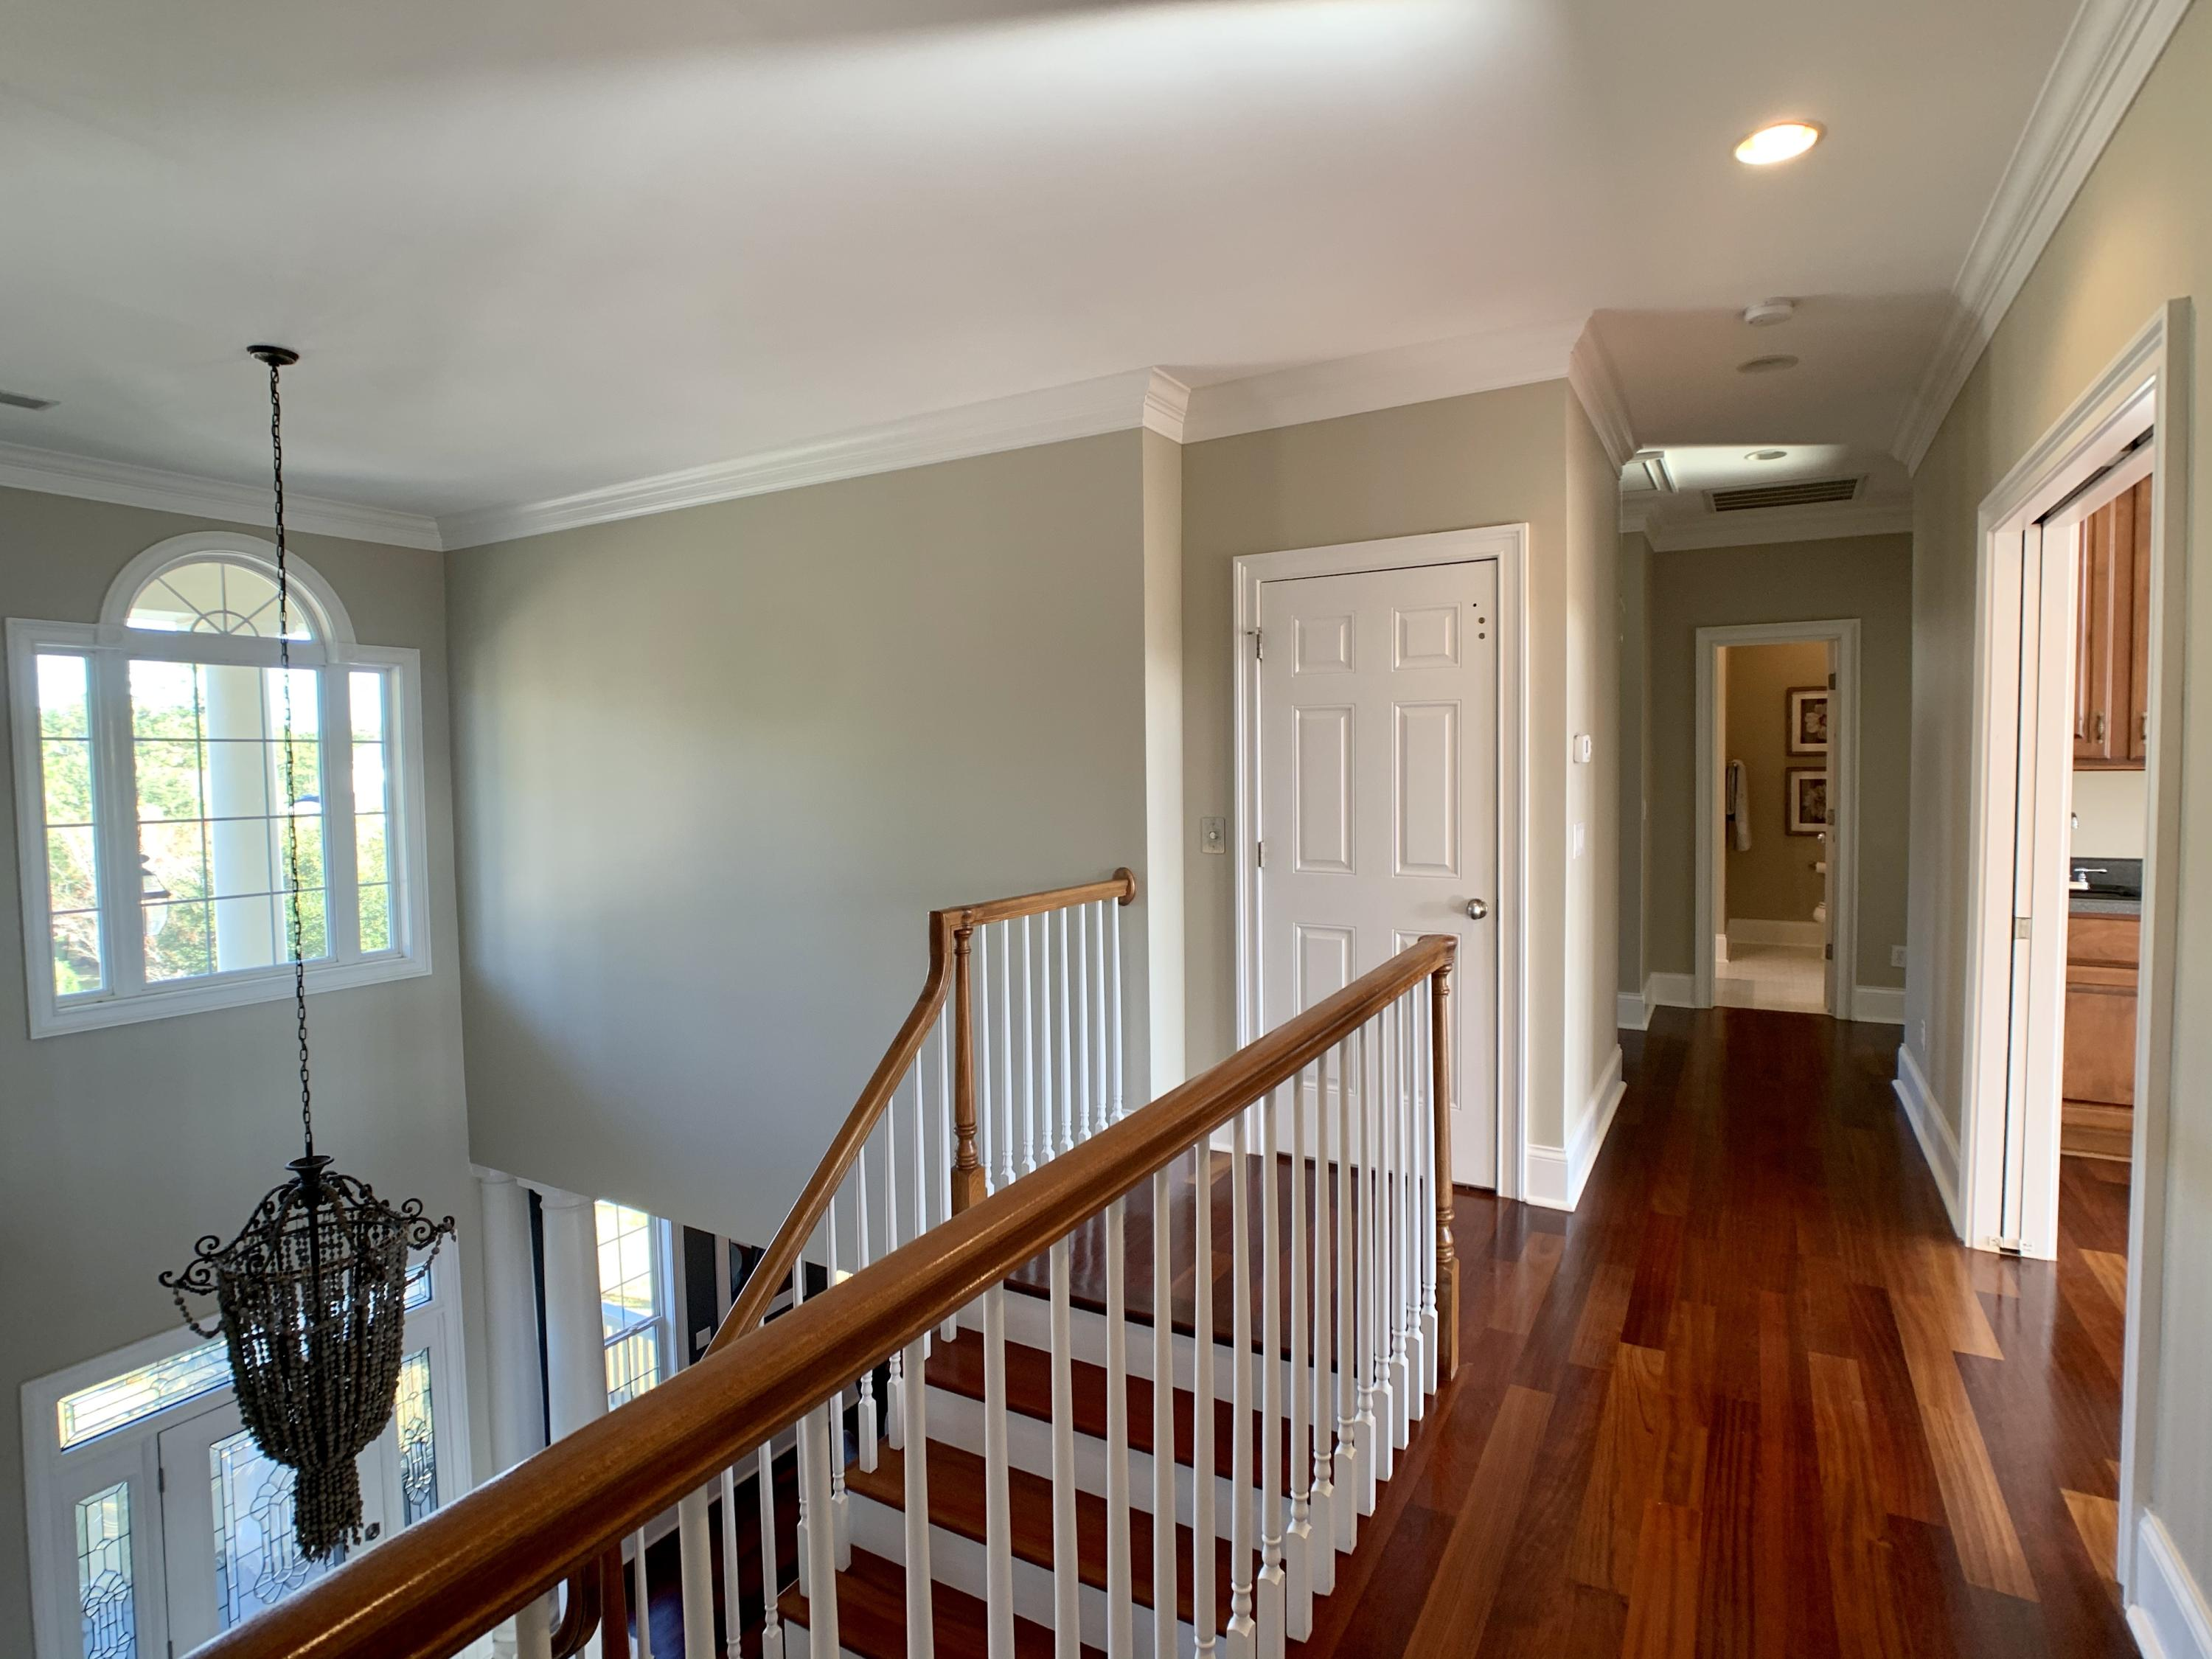 Rivertowne Country Club Homes For Sale - 2128 Breezy Point, Mount Pleasant, SC - 2